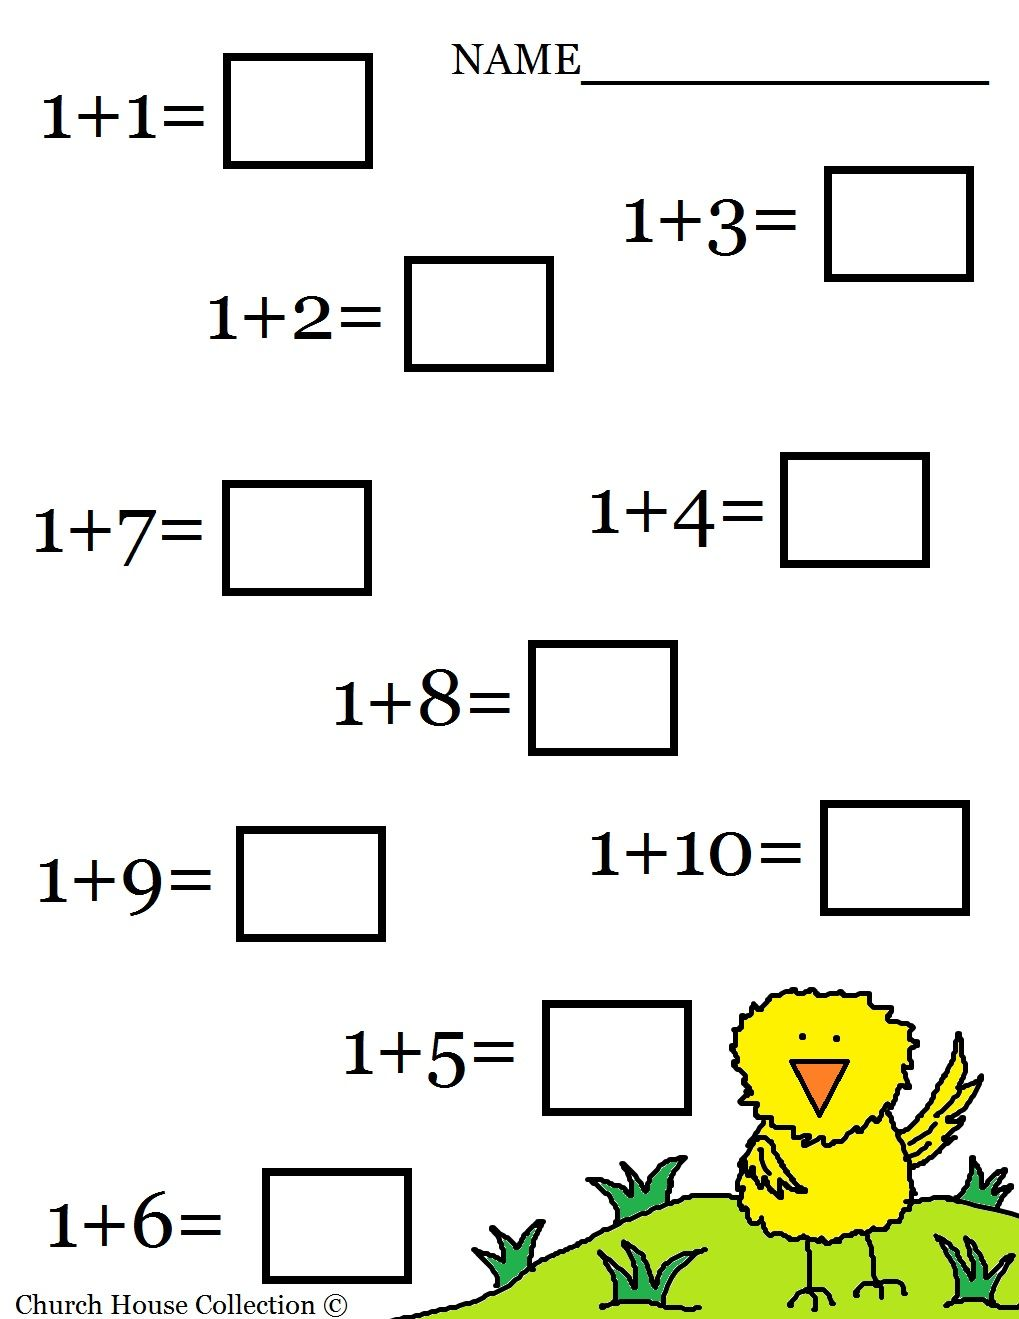 Aldiablosus  Sweet  Images About Worksheets  Math On Pinterest  Math Sheets  With Fascinating  Images About Worksheets  Math On Pinterest  Math Sheets Math Worksheets For Kindergarten And Simple Addition With Archaic Fact Opinion Worksheet Also Adding Decimals Worksheets In Addition Parabola Worksheet And Cell Respiration Worksheet As Well As Unc Academic Worksheets Additionally Dads Worksheet From Pinterestcom With Aldiablosus  Fascinating  Images About Worksheets  Math On Pinterest  Math Sheets  With Archaic  Images About Worksheets  Math On Pinterest  Math Sheets Math Worksheets For Kindergarten And Simple Addition And Sweet Fact Opinion Worksheet Also Adding Decimals Worksheets In Addition Parabola Worksheet From Pinterestcom